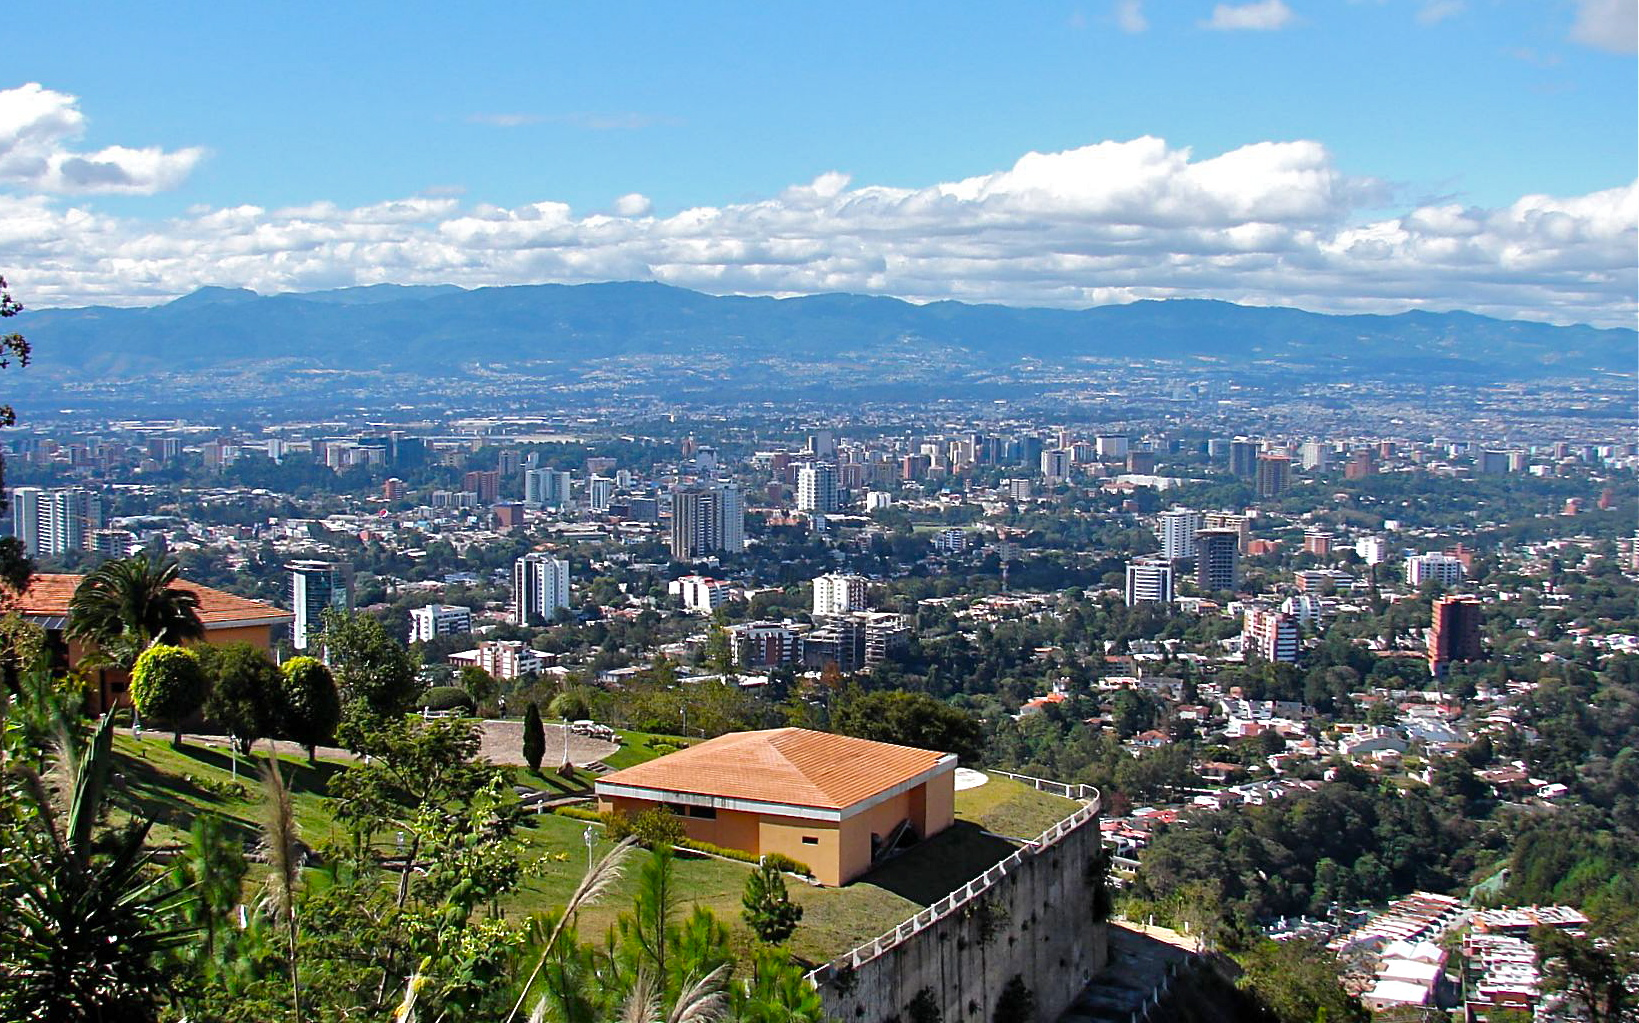 Guatemala City viewed from the Carretera a El Salvador neighborhood.